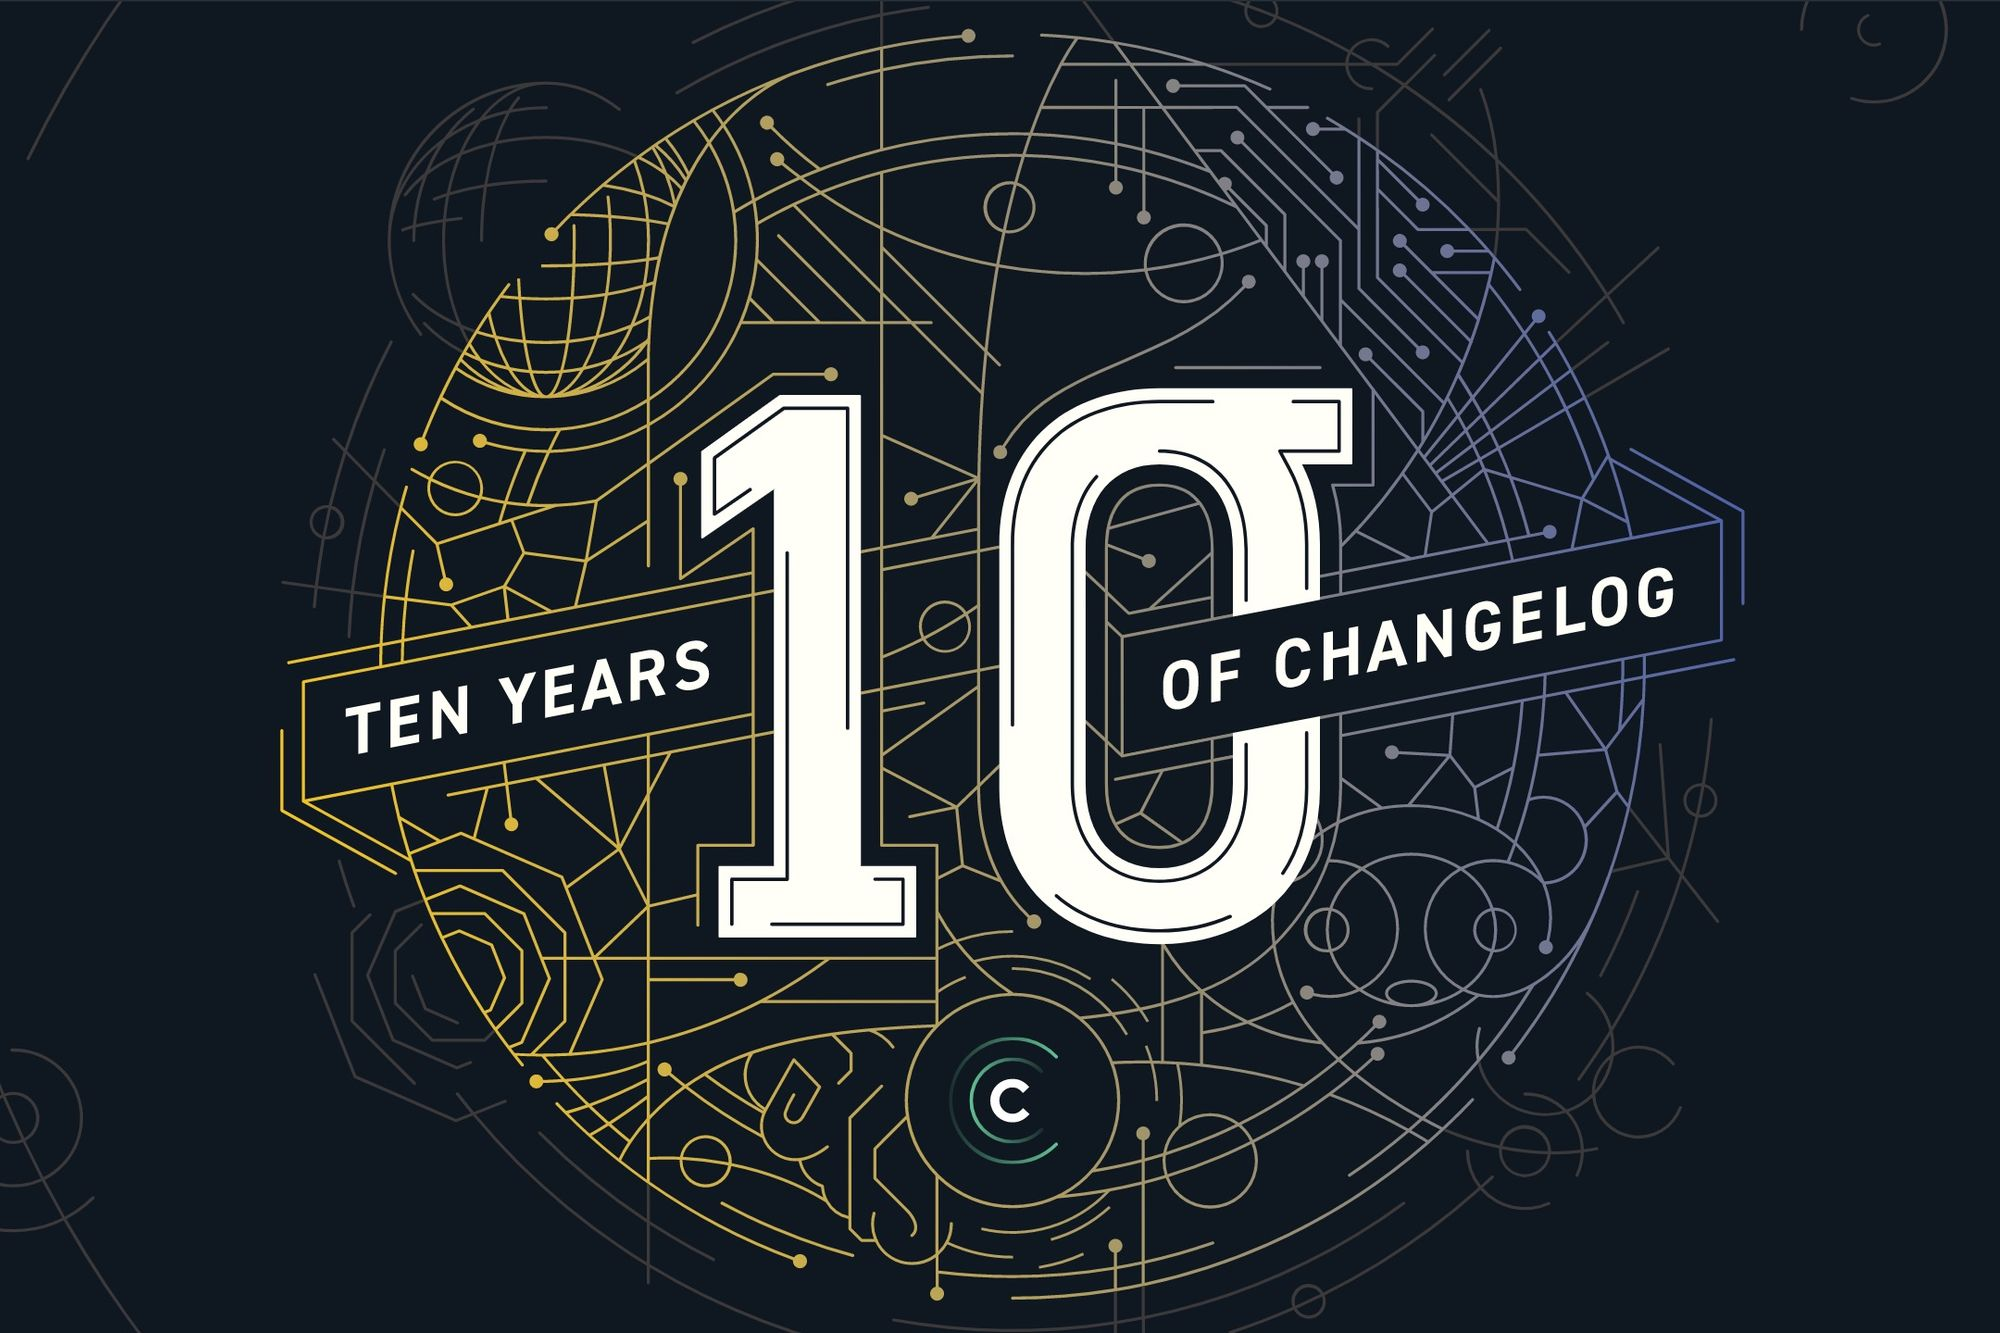 Open Source Moves Fast: 10 years of The Changelog